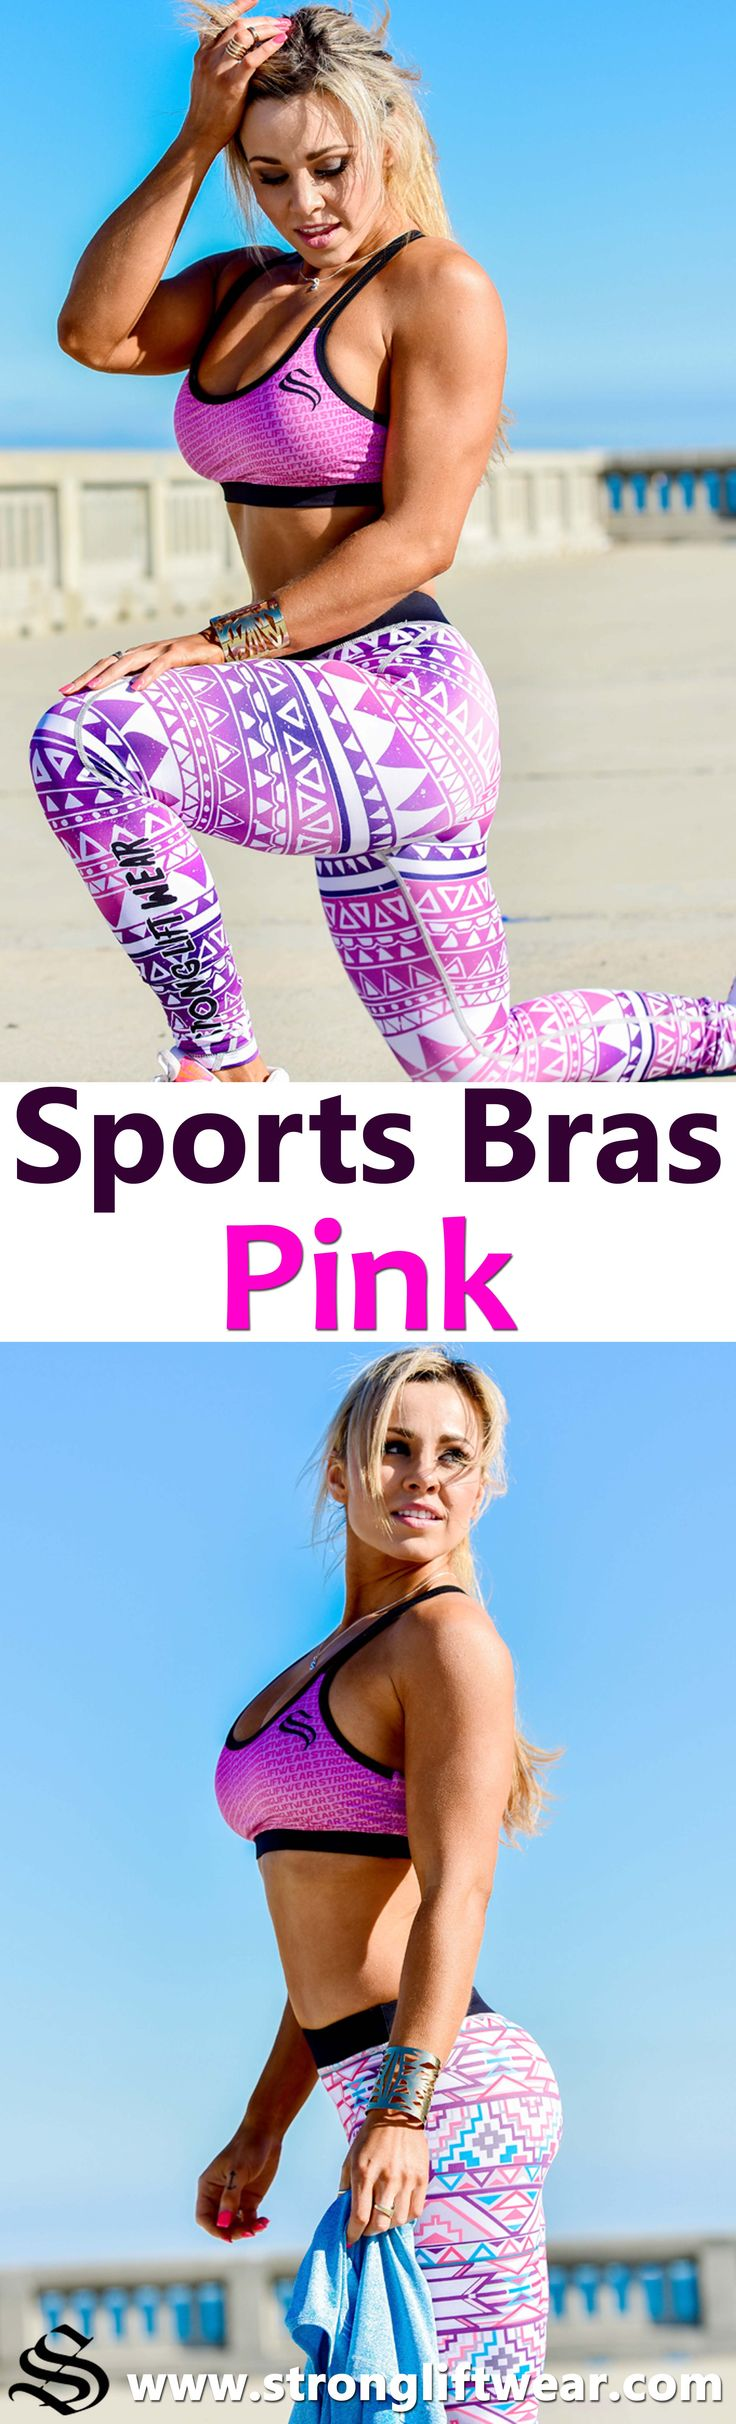 Feeling fit or just need a great crop top!? Our womens sports bras feature the same high quality material blend that you find in our top of the range leggings and provide a flattering look and performance you would expect from SLW! │gym wear │fitness wear │fitness clothing │fitness │outfits │workout dress │gym outfits │workout outfits │shorts │bra #gymwear #fitnesswear #fitnessclothing #fitness #outfits #workoutdress #gymoutfits #workoutoutfits #shorts #bra